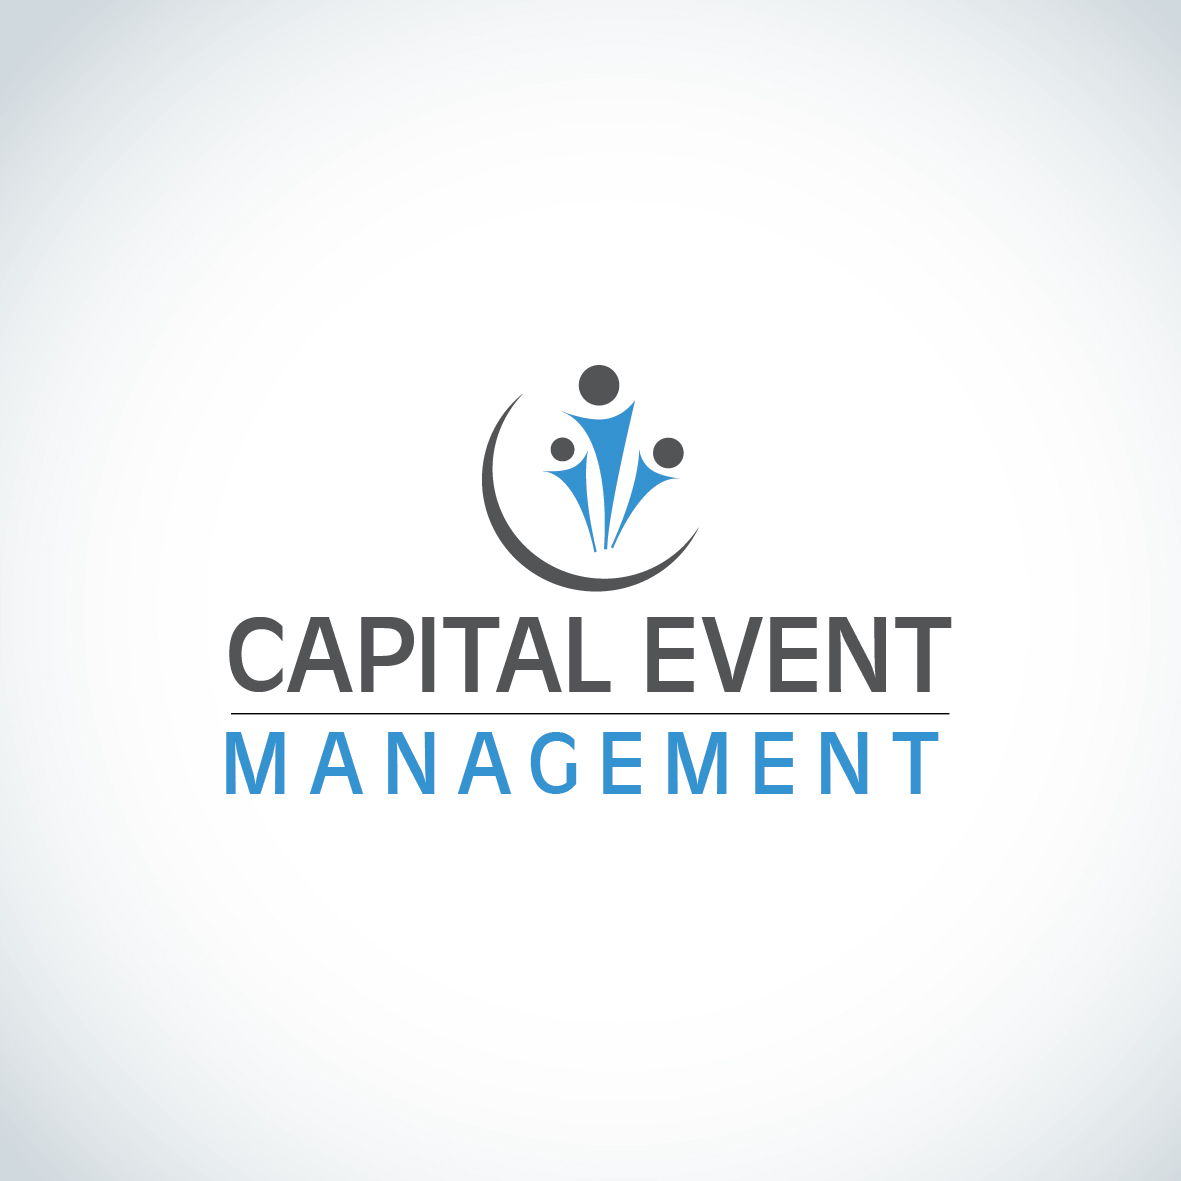 Logo Design by aesthetic-art - Entry No. 18 in the Logo Design Contest Capital Event Management.